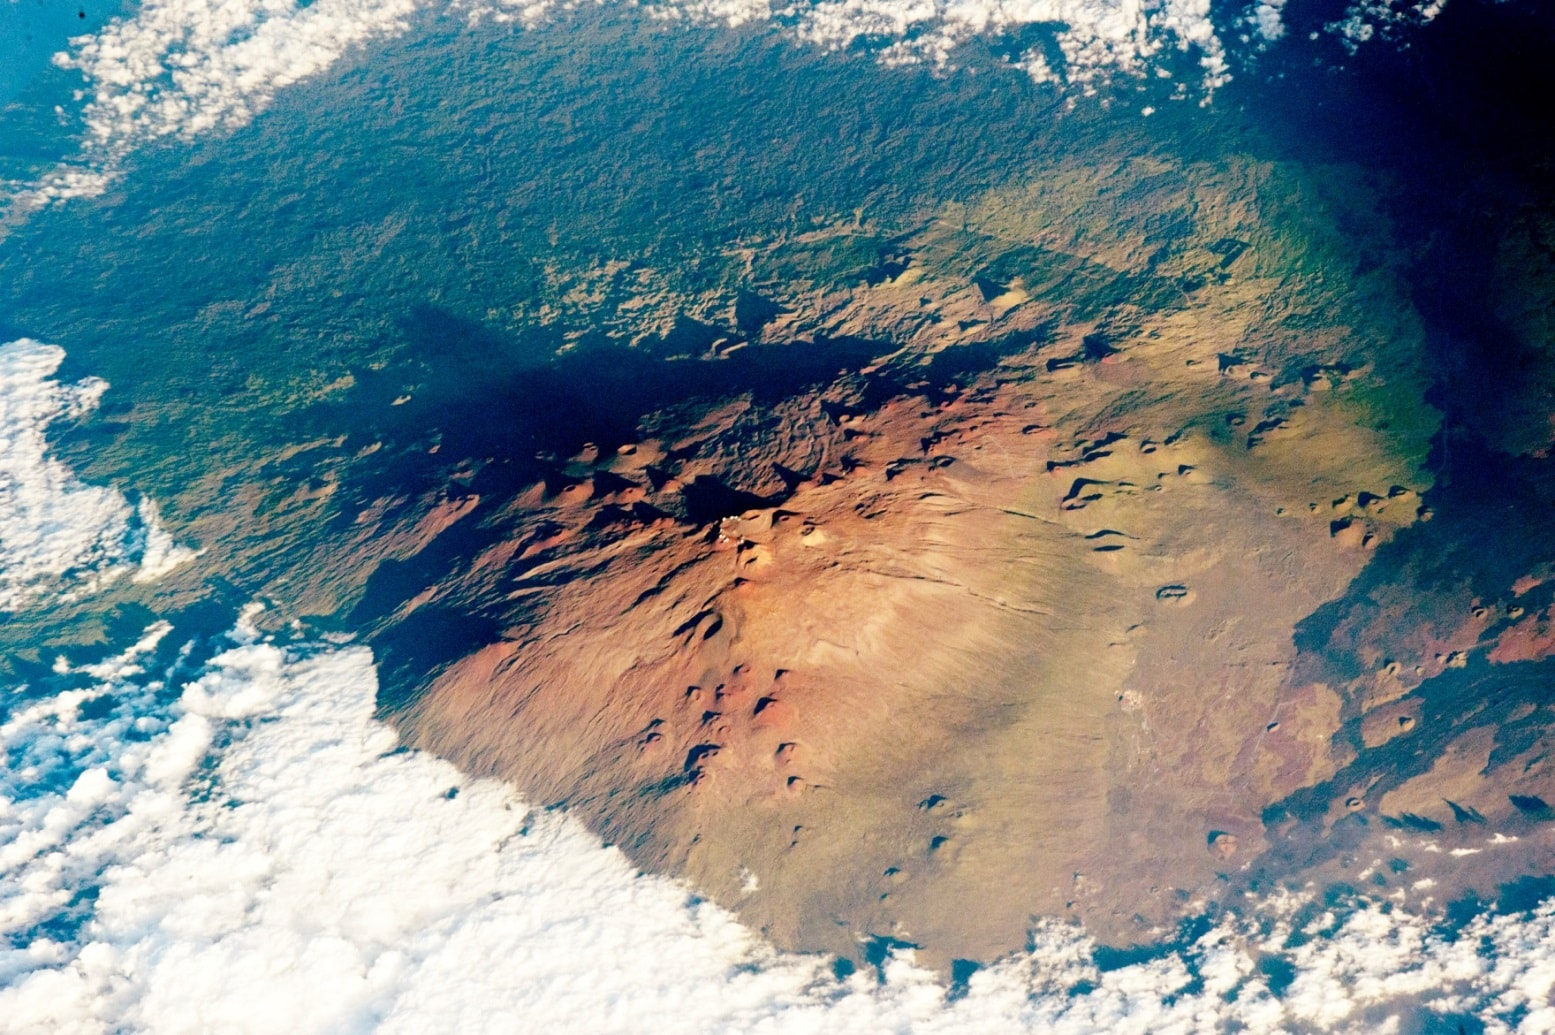 The Mauna Kea Observatories - an image cature by one of the astronauts on the ISS. Credit: NASA